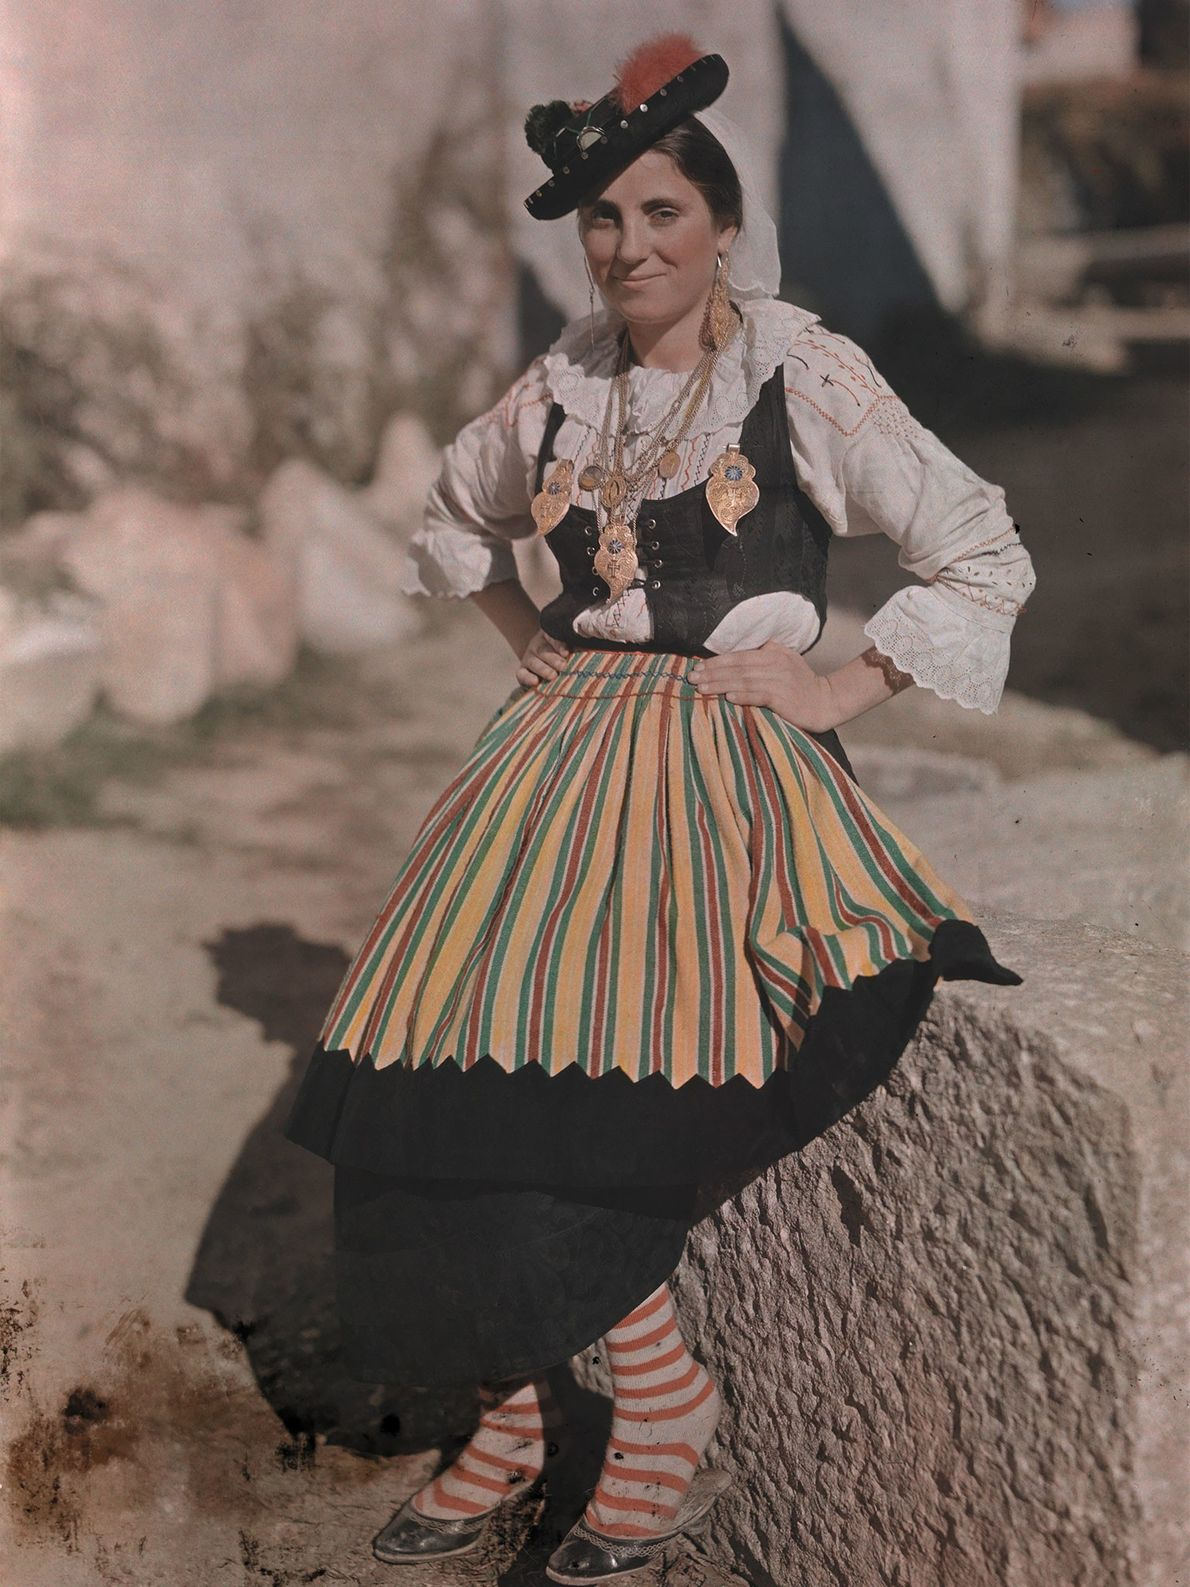 A woman wearing festival attire and a flashy black hat leans on a stone in Braga, ...